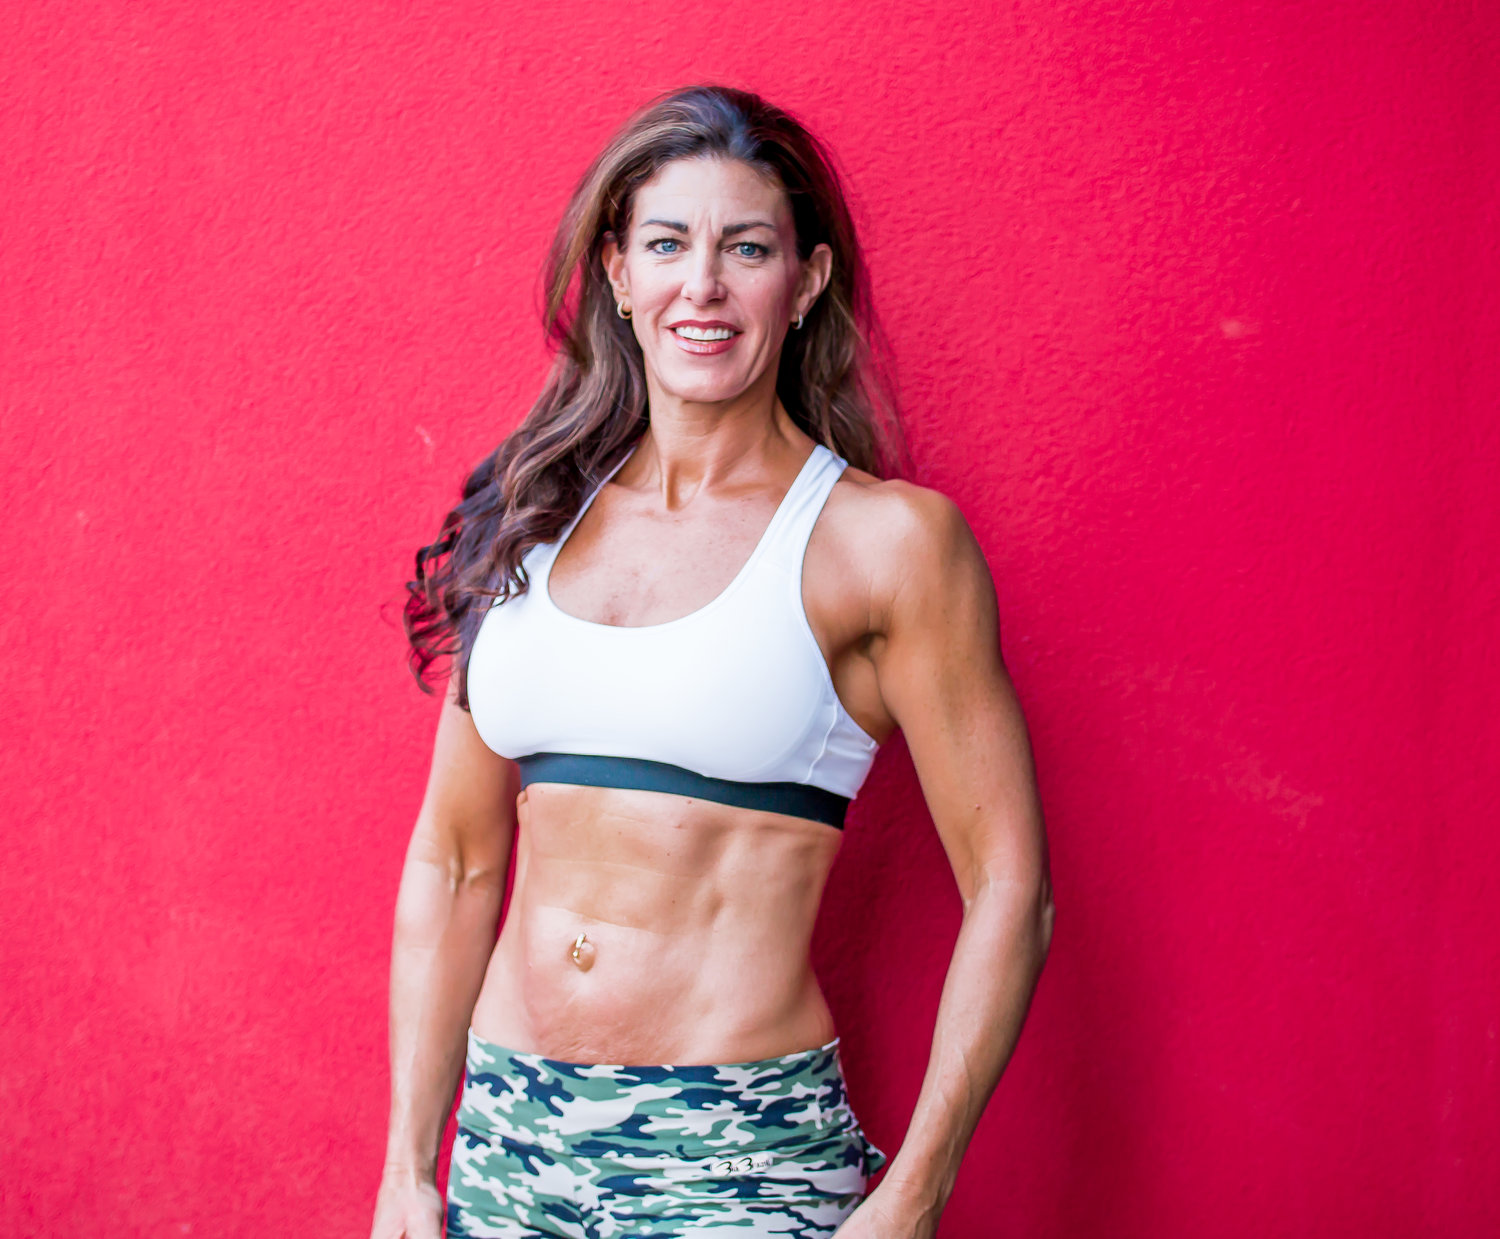 Nex Level Fitness Blog Nex Level Fitness Michelle bauer, do is a family medicine specialist in allen park, mi. nex level fitness blog nex level fitness